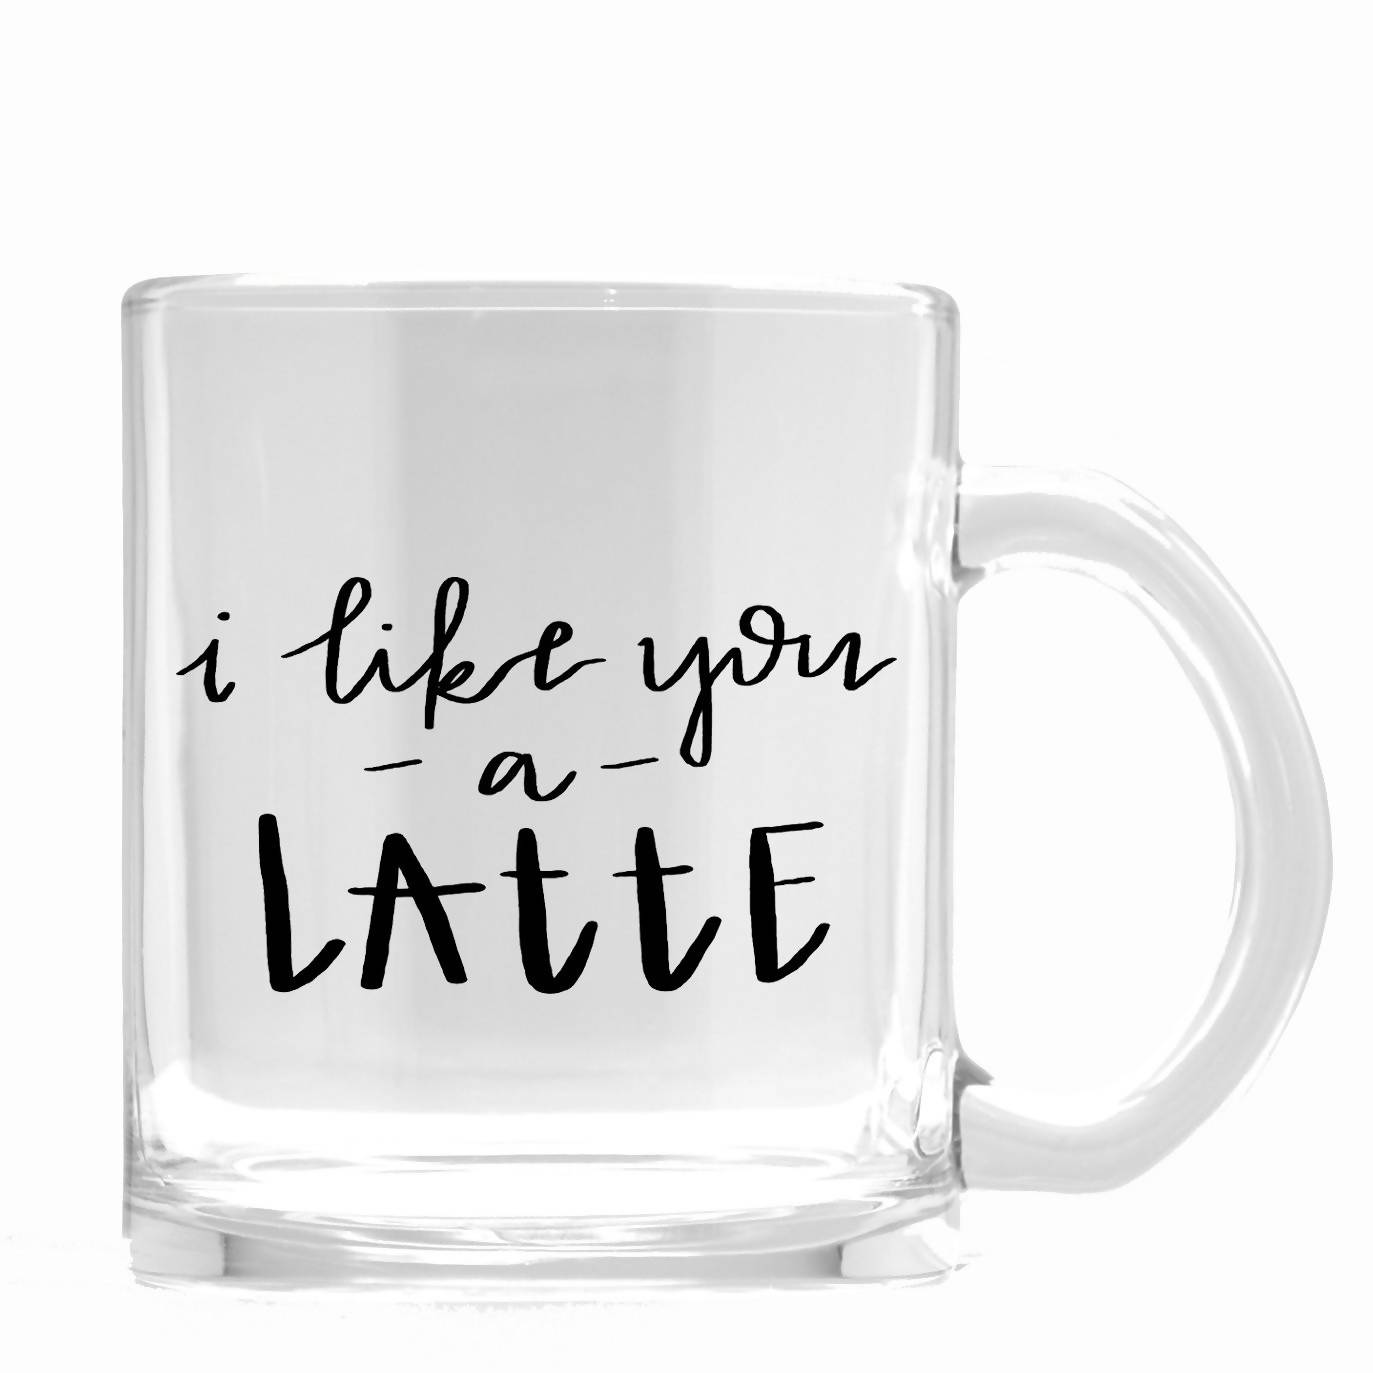 I Like You a Latte Glass Coffee Mug